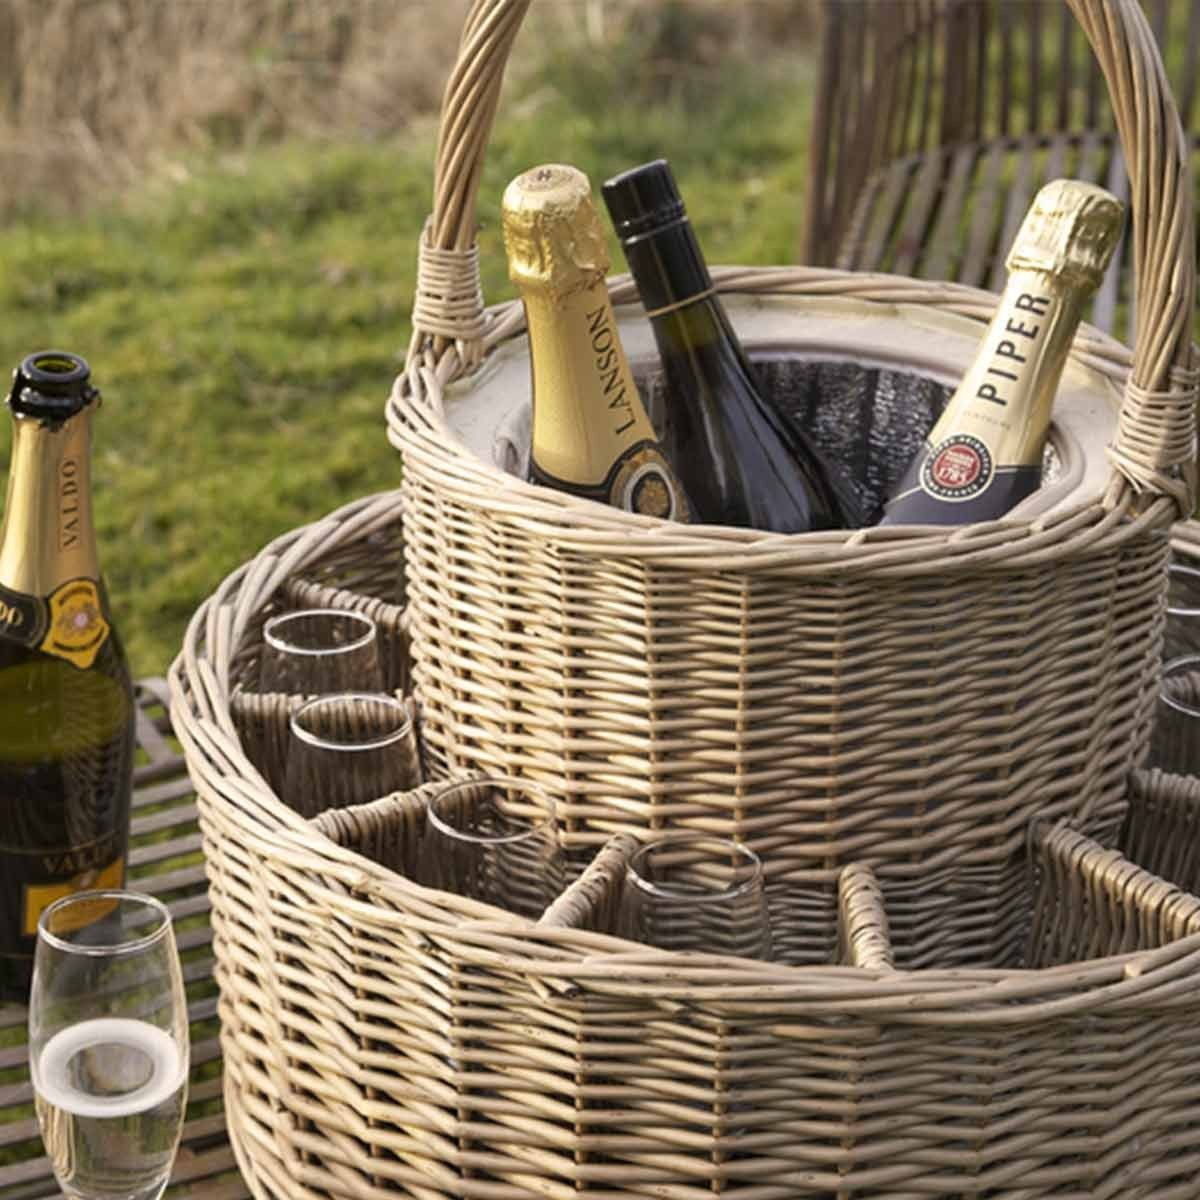 Chilled Wicker Champagne Basket with 12 Flutes  Chill 4 bottles